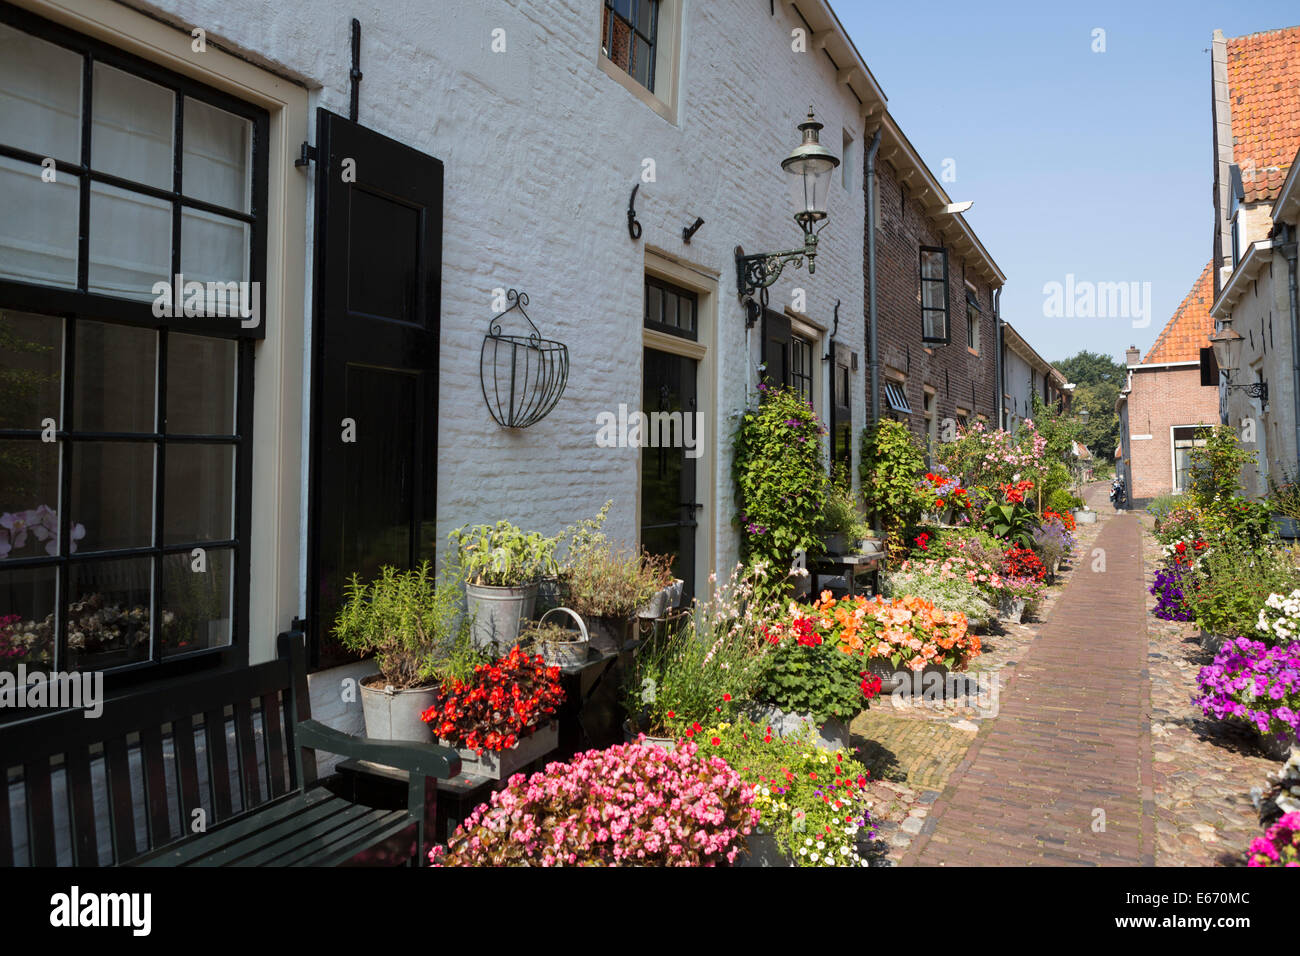 Romantic nostalgic street with colorful flowers in the old Hanseatic city 'Elburg' in the Netherlands - Stock Image